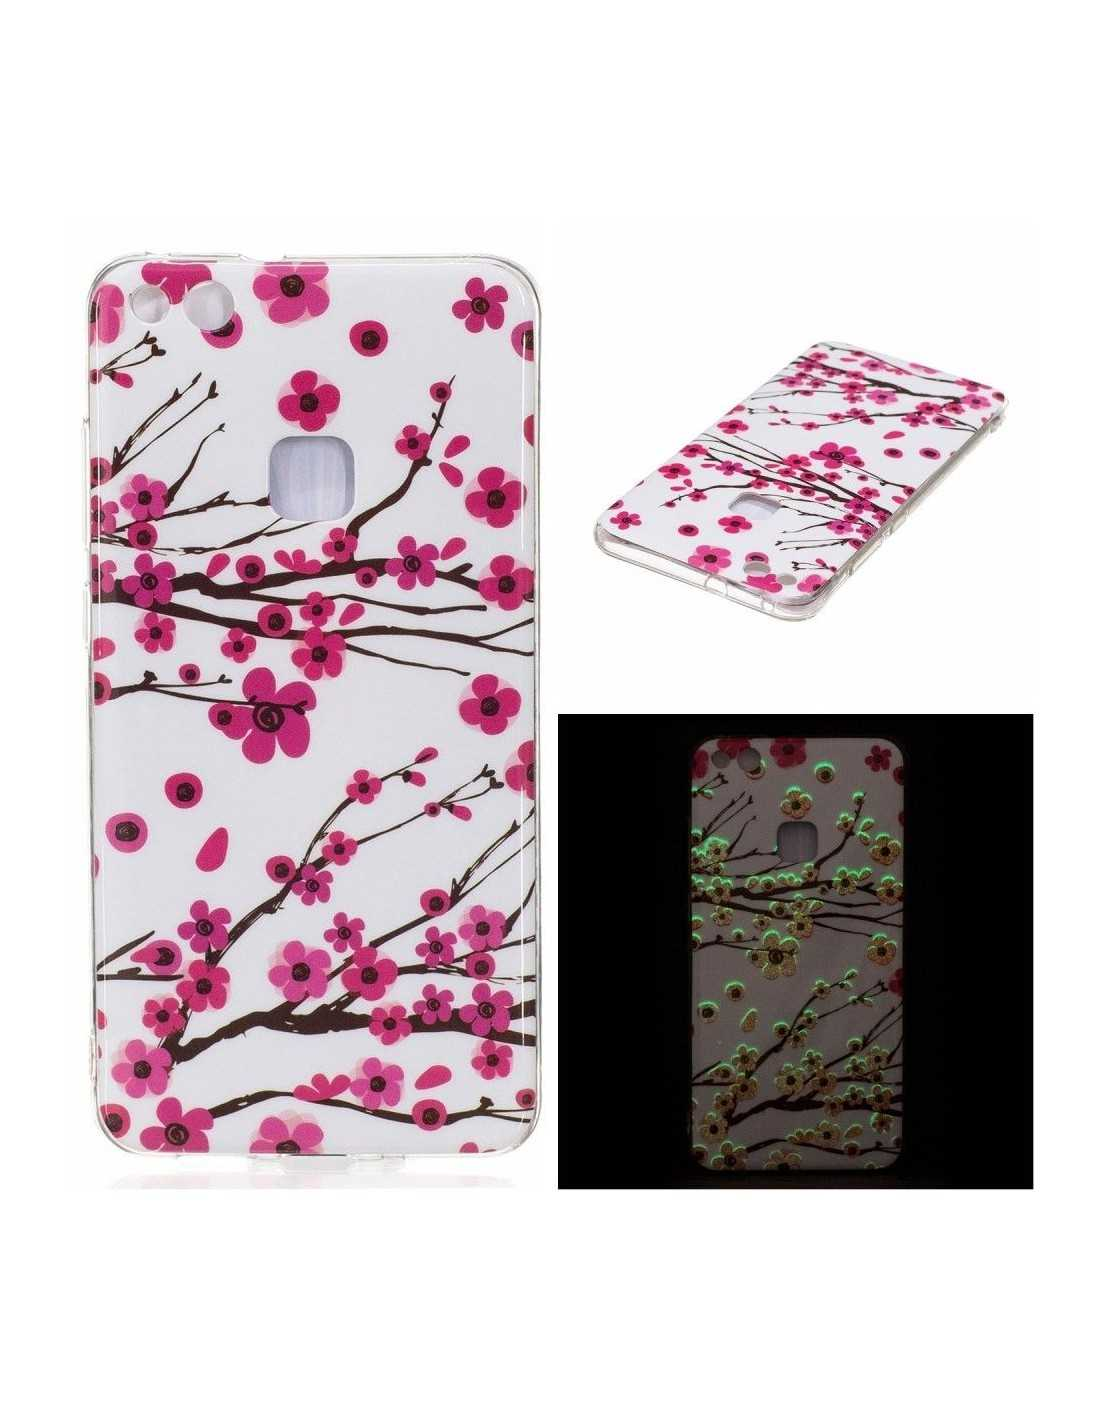 Coque Huawei P10 Lite silicone Phospho Cerisier - All4iphone